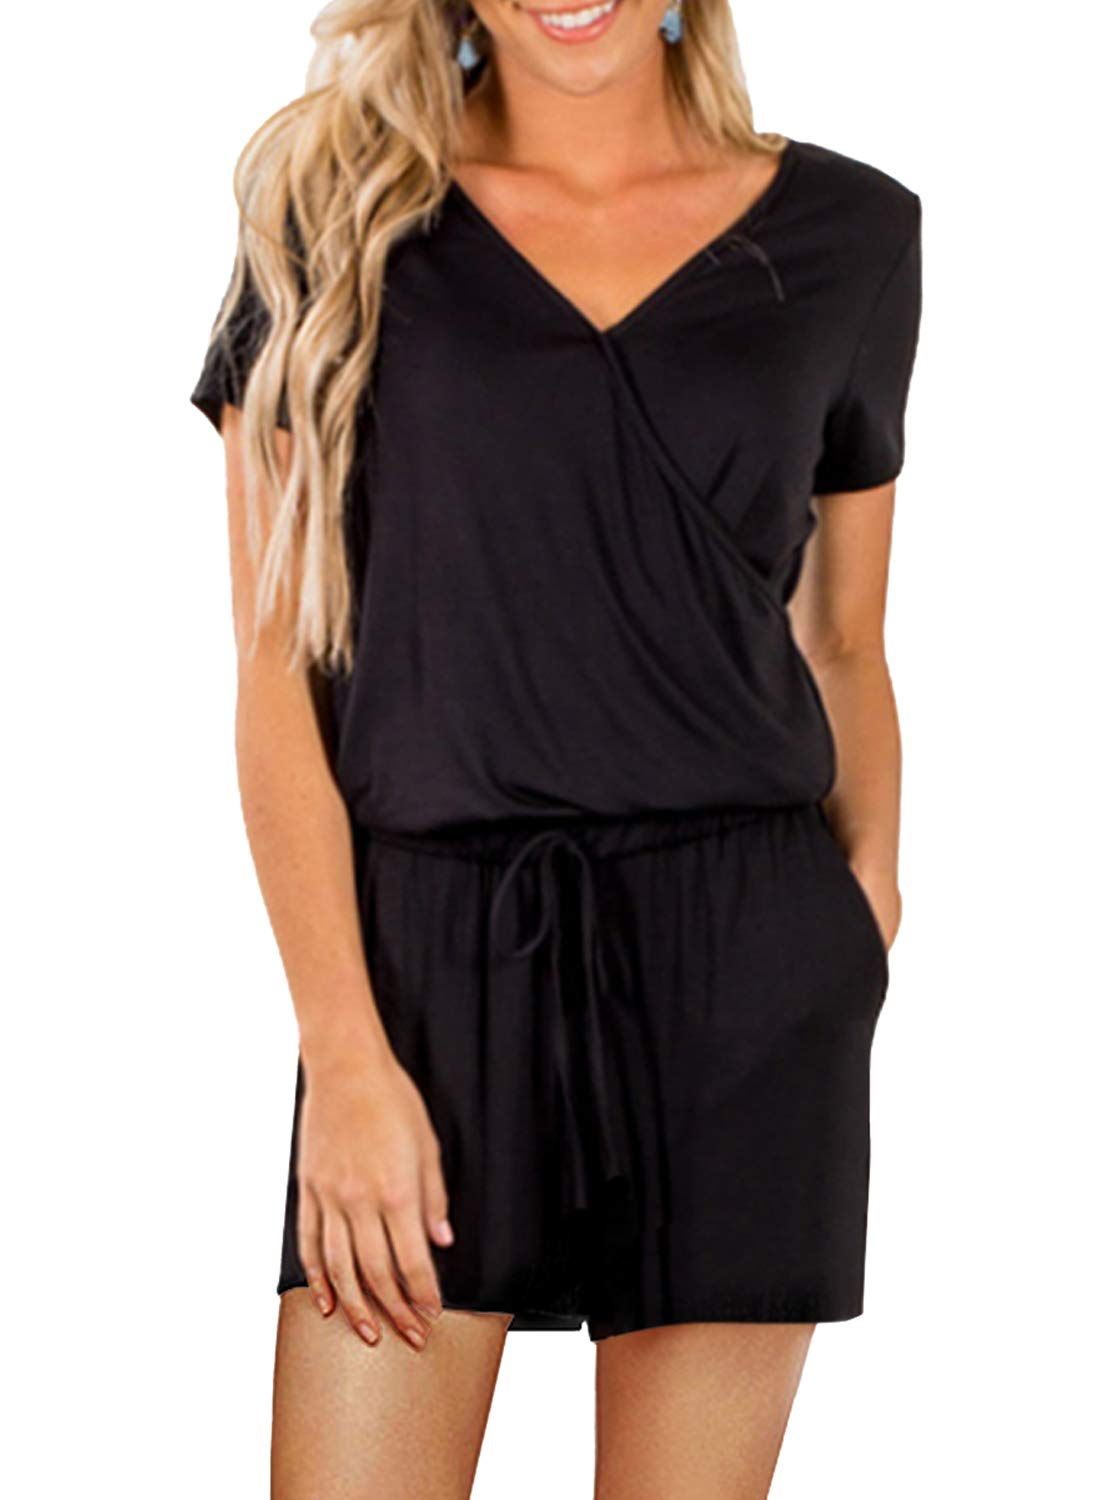 Dearlove Womens Casual V Neck Short Sleeve Loose Wide Leg Elastic Waist Jumpsuit Rompers with Pockets Playsuit Solid Black Medium by Dearlove